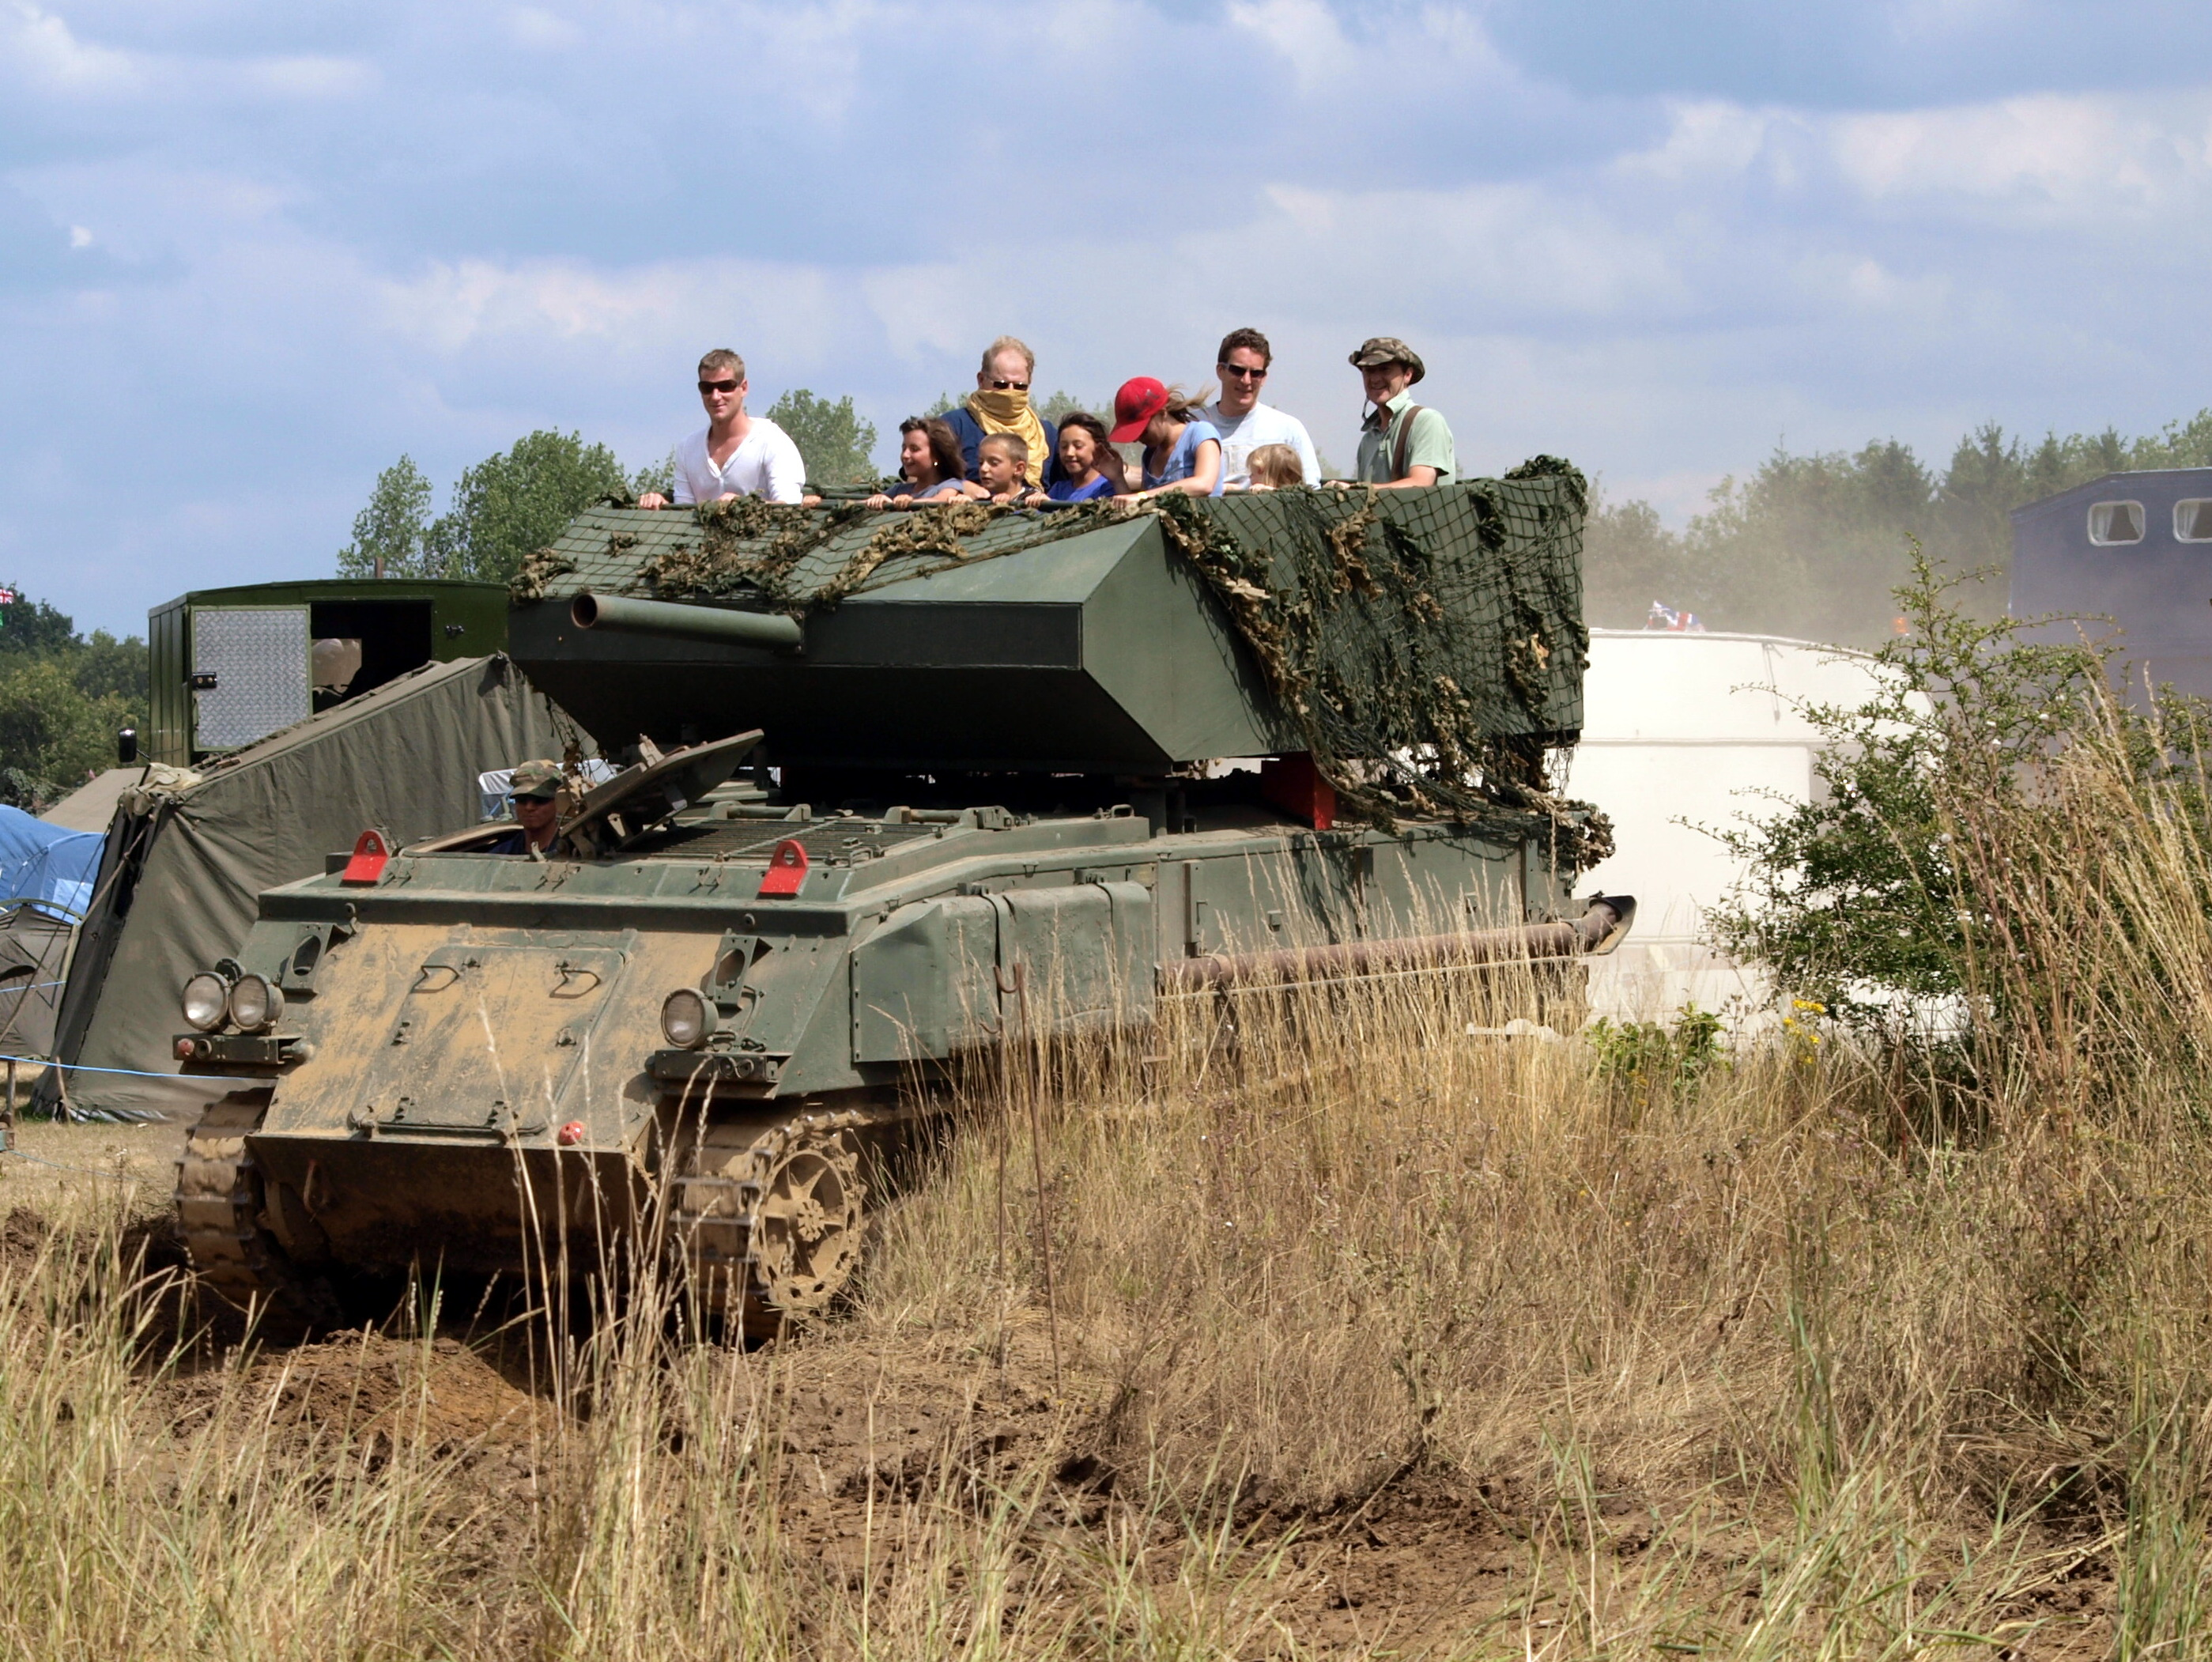 File Fv432 With Fake Turret For Commercial Tank Ride Pic1